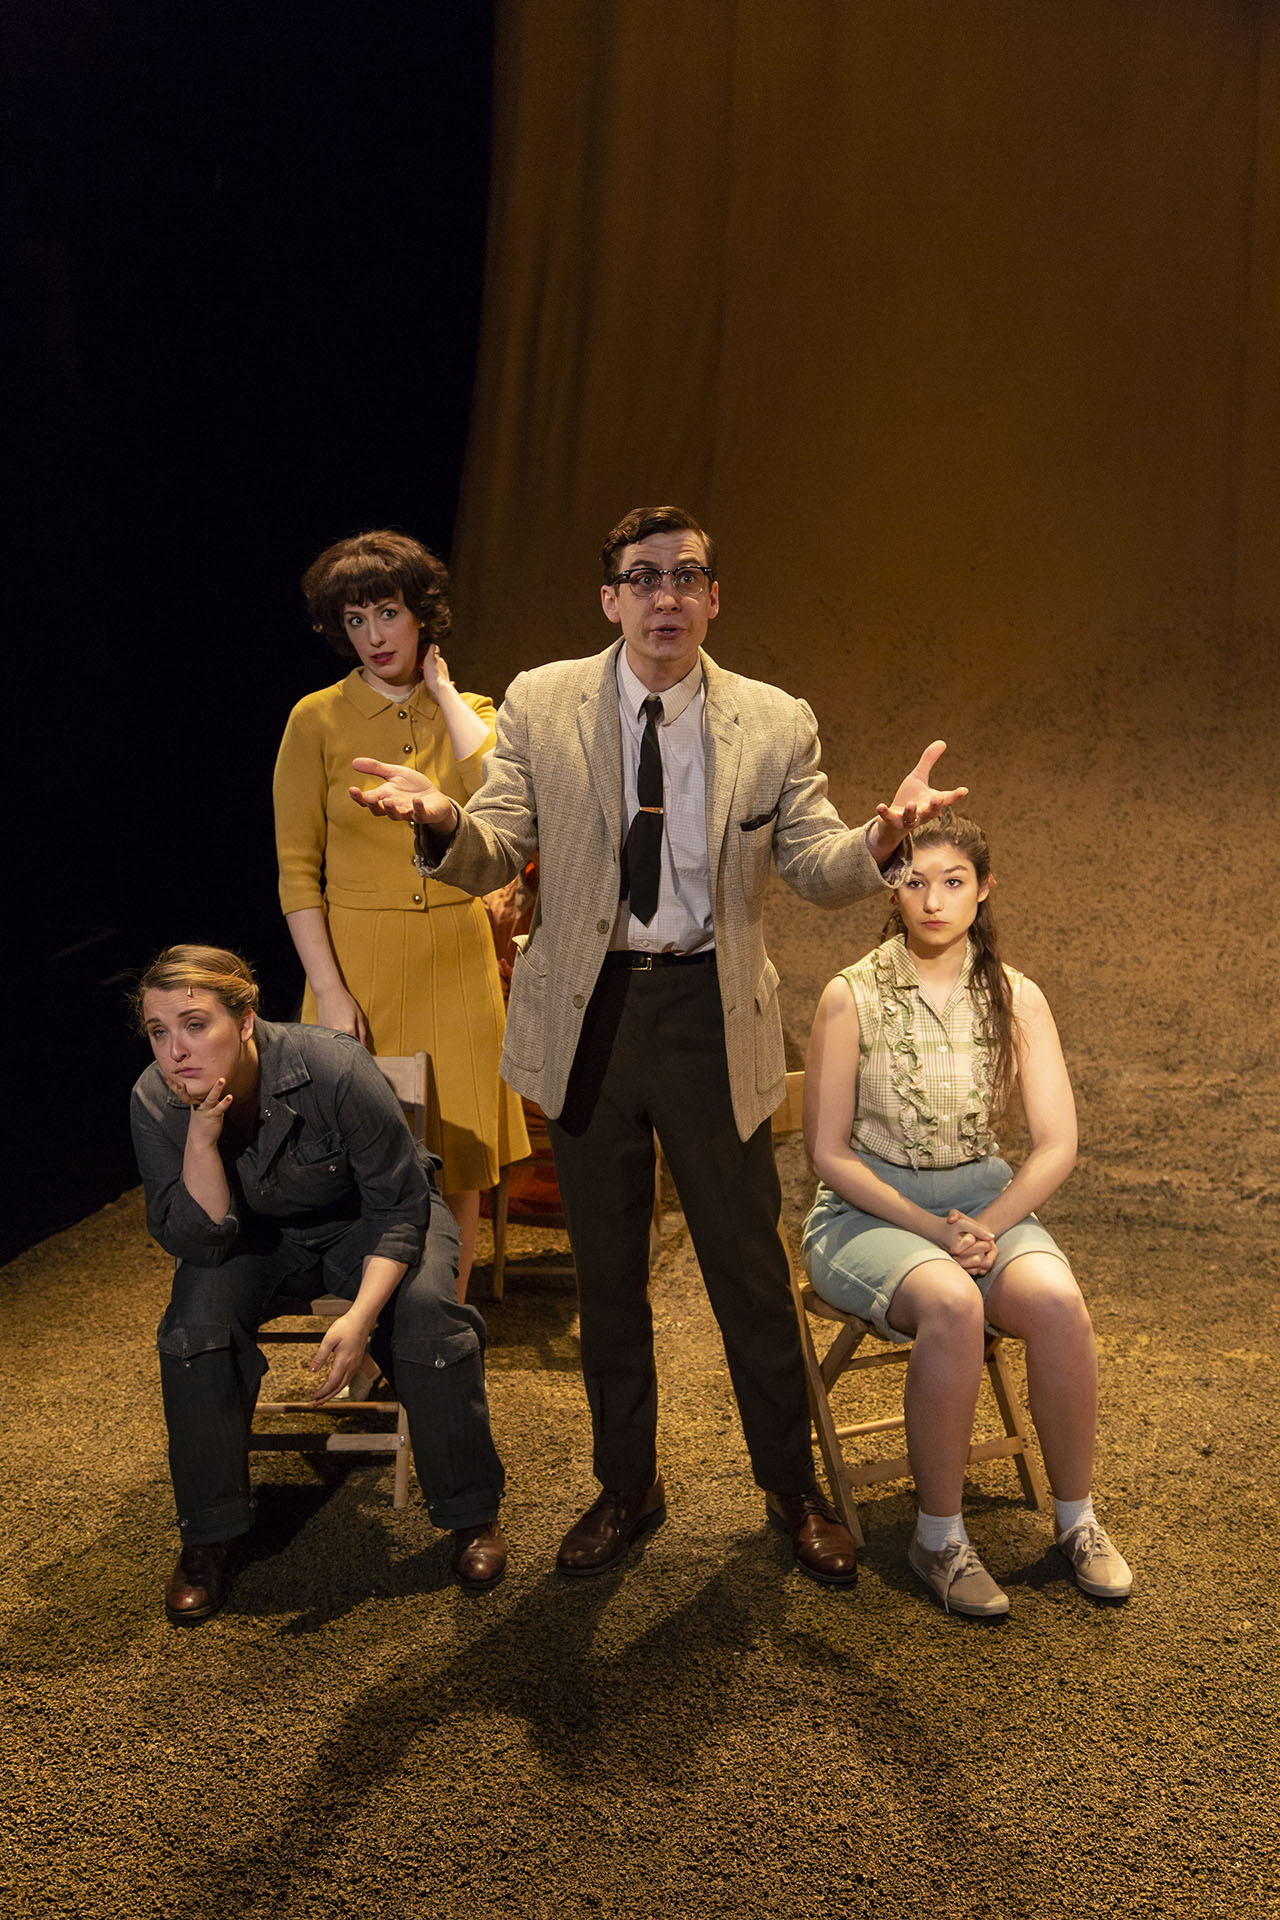 TENT REVIVAL by Majkin Holmquist ('18), directed by Rory Pelsue ('18), Carlotta Festival of New Plays, Yale School of Drama, 2018. Photo by T. Charles Erickson.